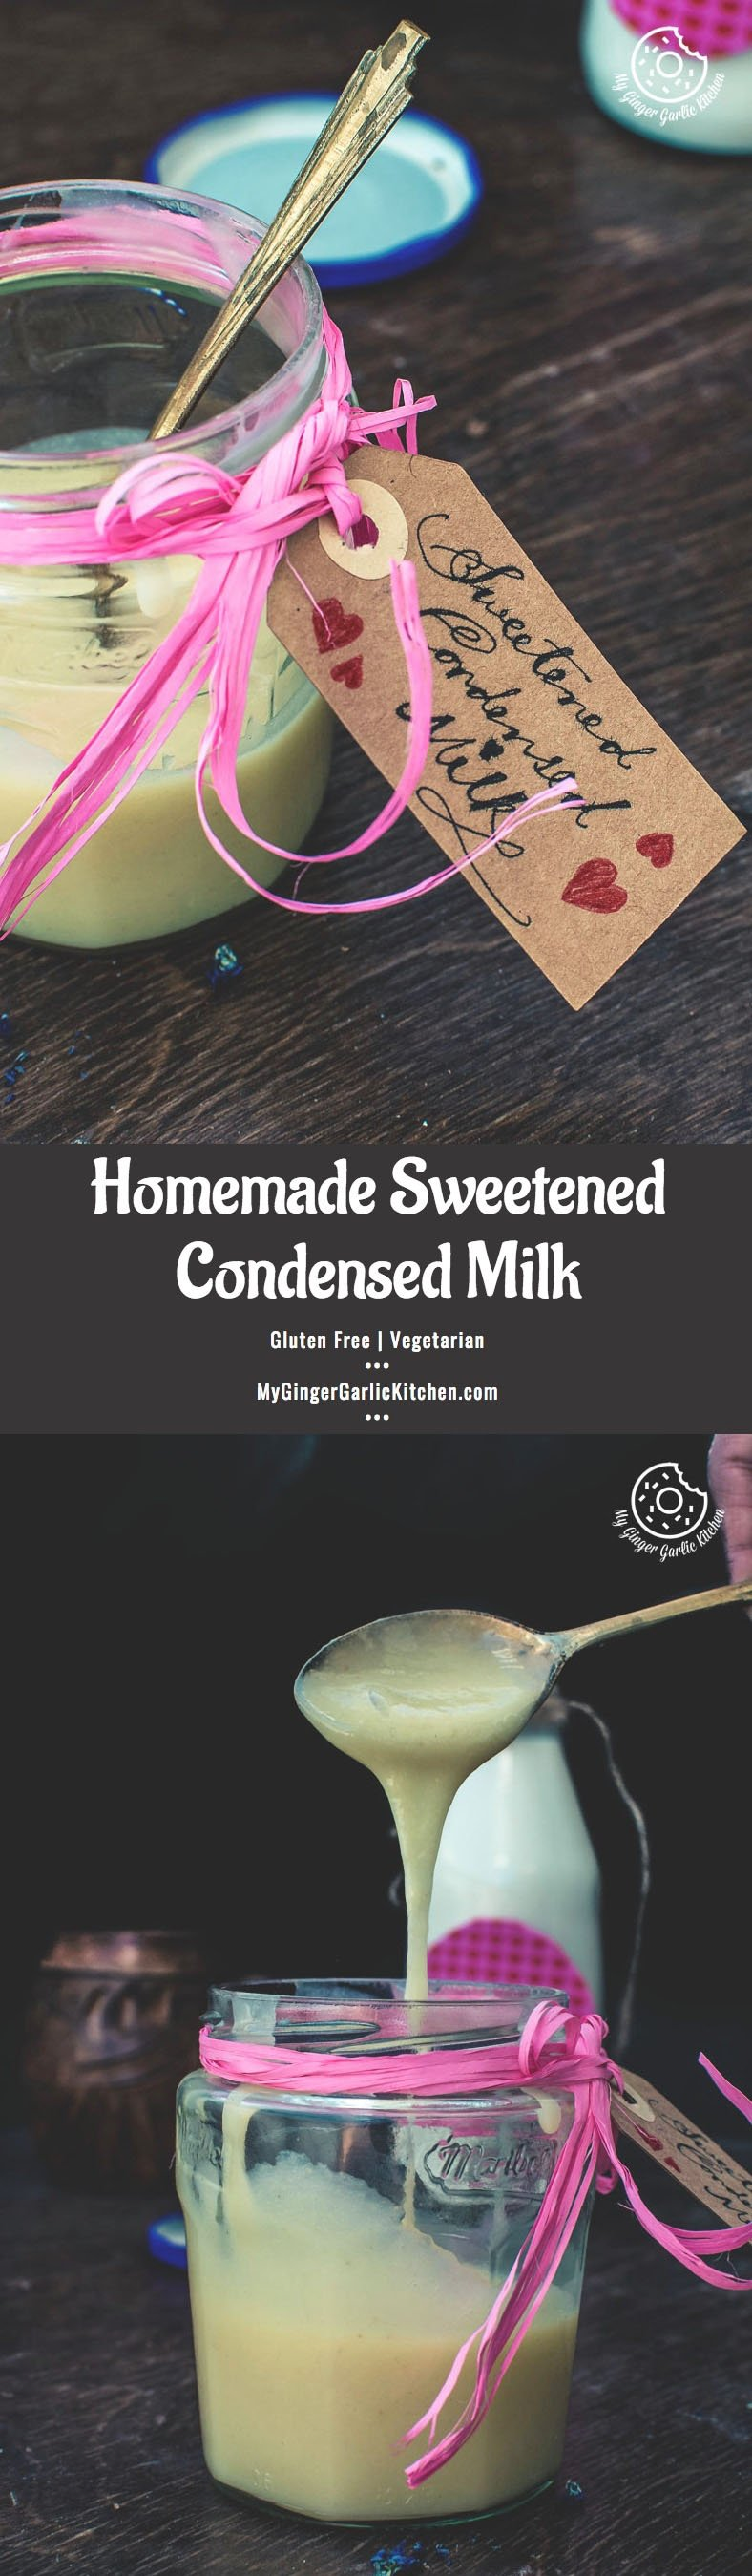 Recipe Homemade Sweetened Condensed Milk | mygingergarlickitchen.com/ @anupama_dreams